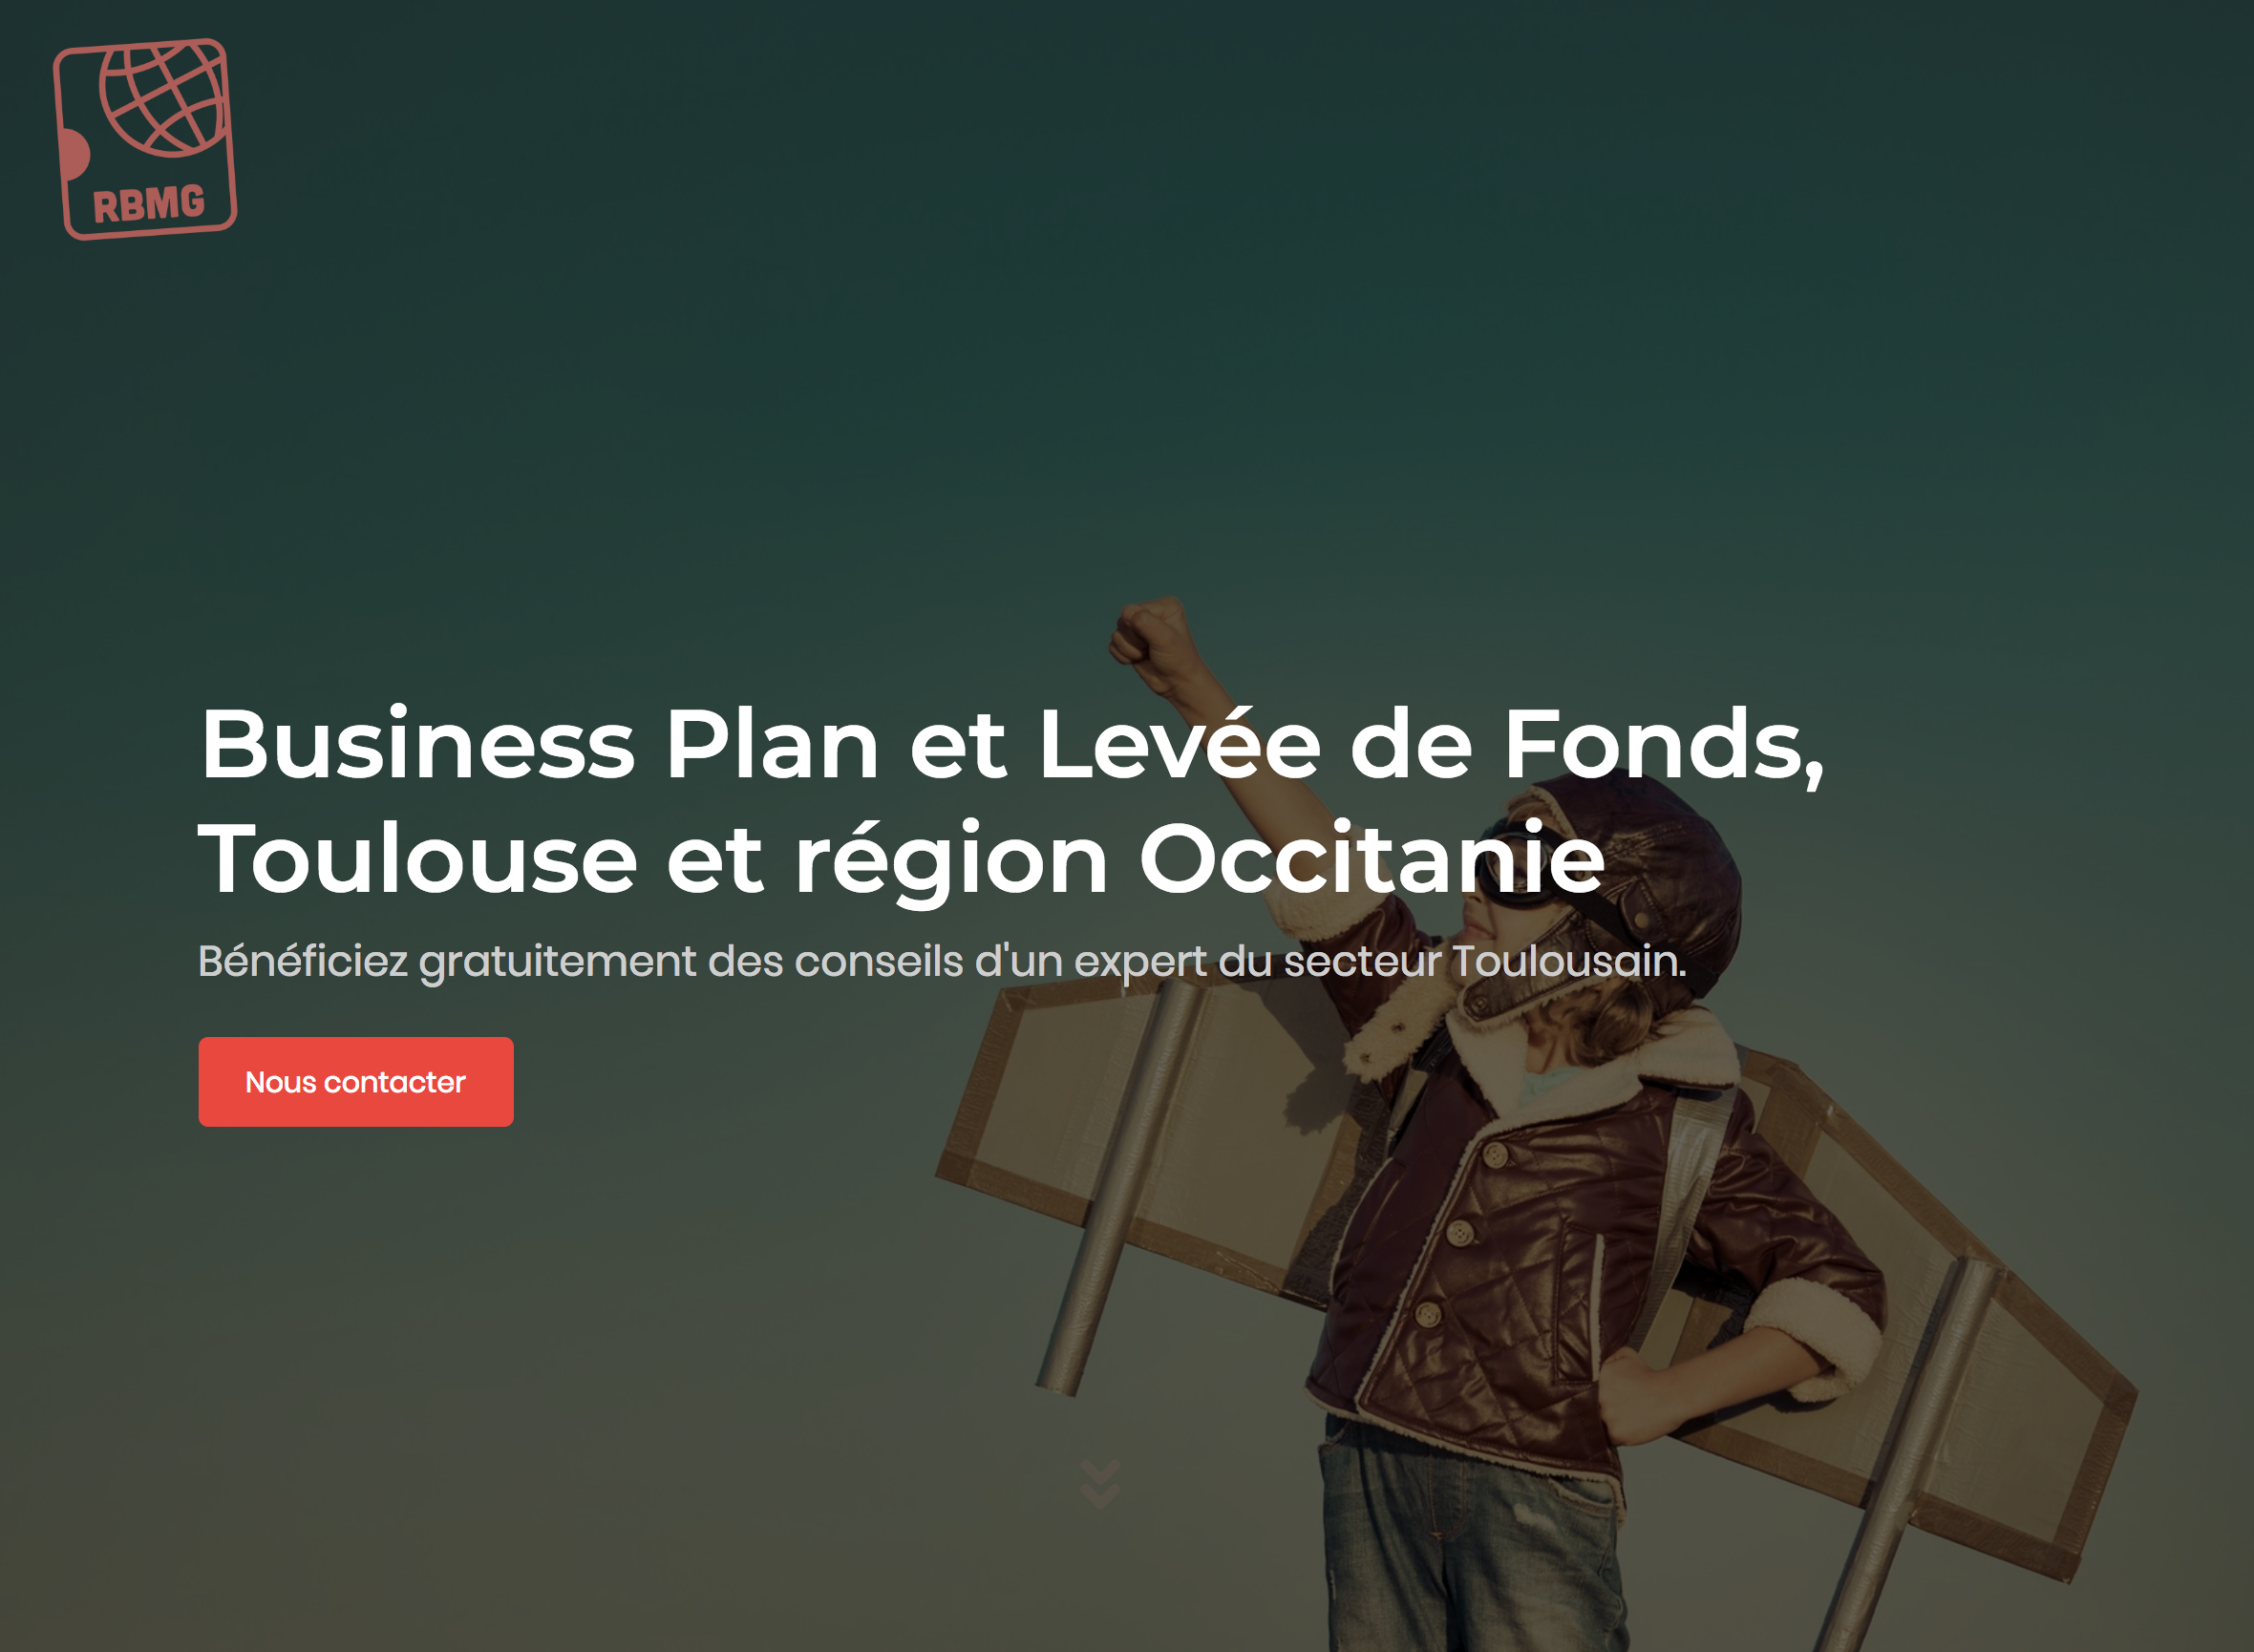 (c) Business-plan-toulouse.fr